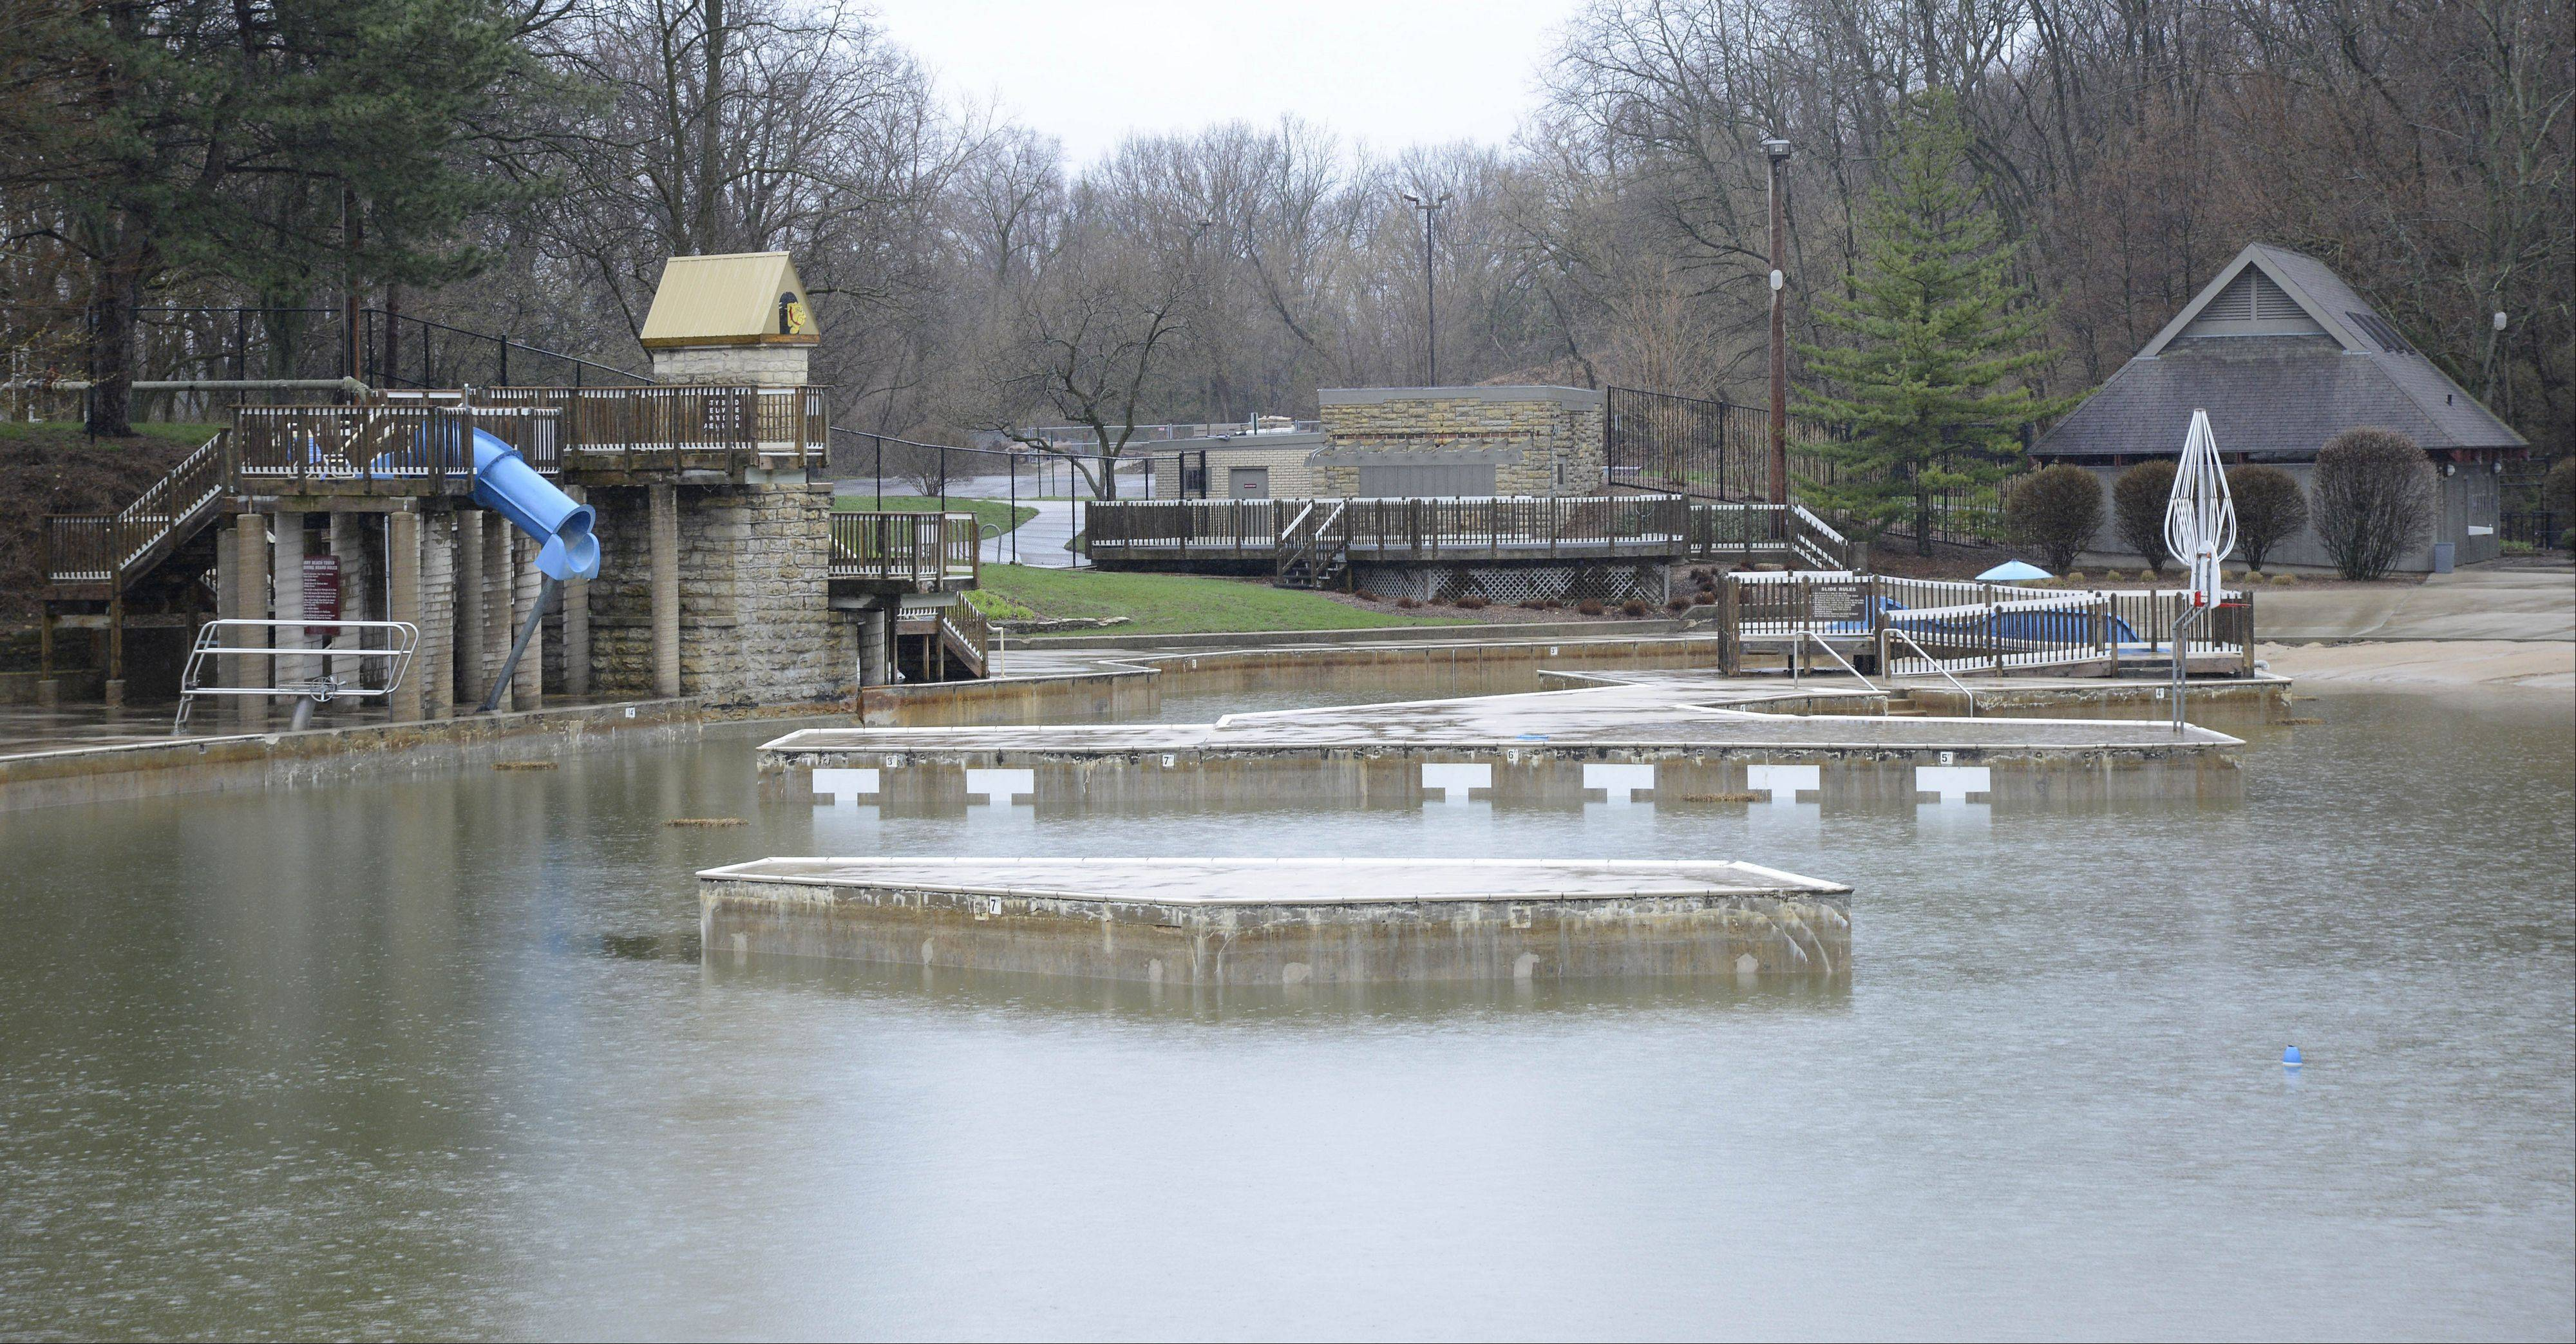 Batavia's Harold Hall Quarry Beach remained filled with rain water Tuesday, stalling preparation to open for the summer season.